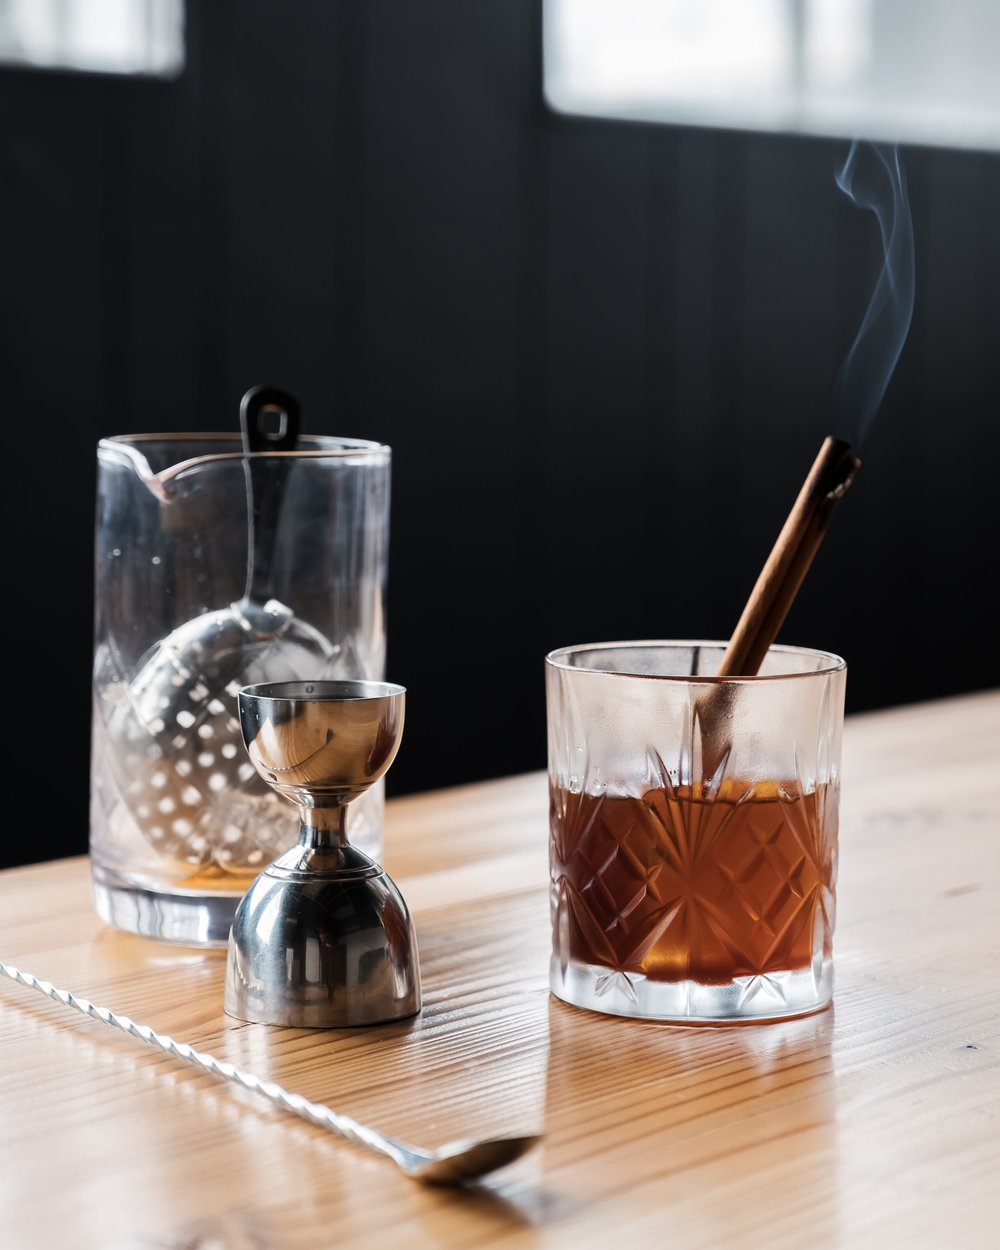 ingredients - 1 oz mezcal Espadin1 oz cold brew coffee1/2 oz *Allspice syrupGarnish with a burning cinnamon stick